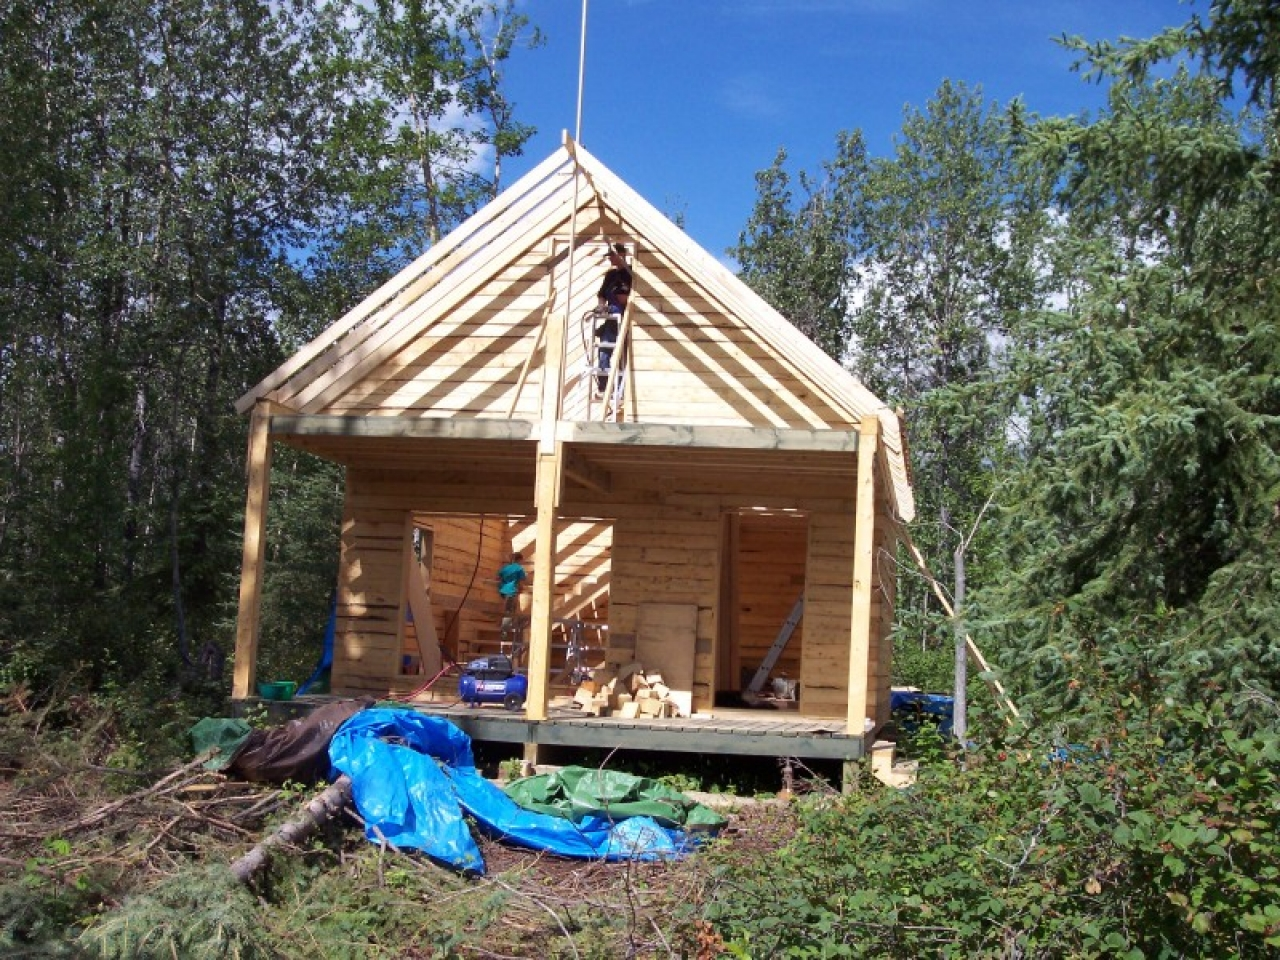 Build It Yourself Campers Build It Yourself Cabin Kits: Building Small Cabins Building Small Cabins On Trailers